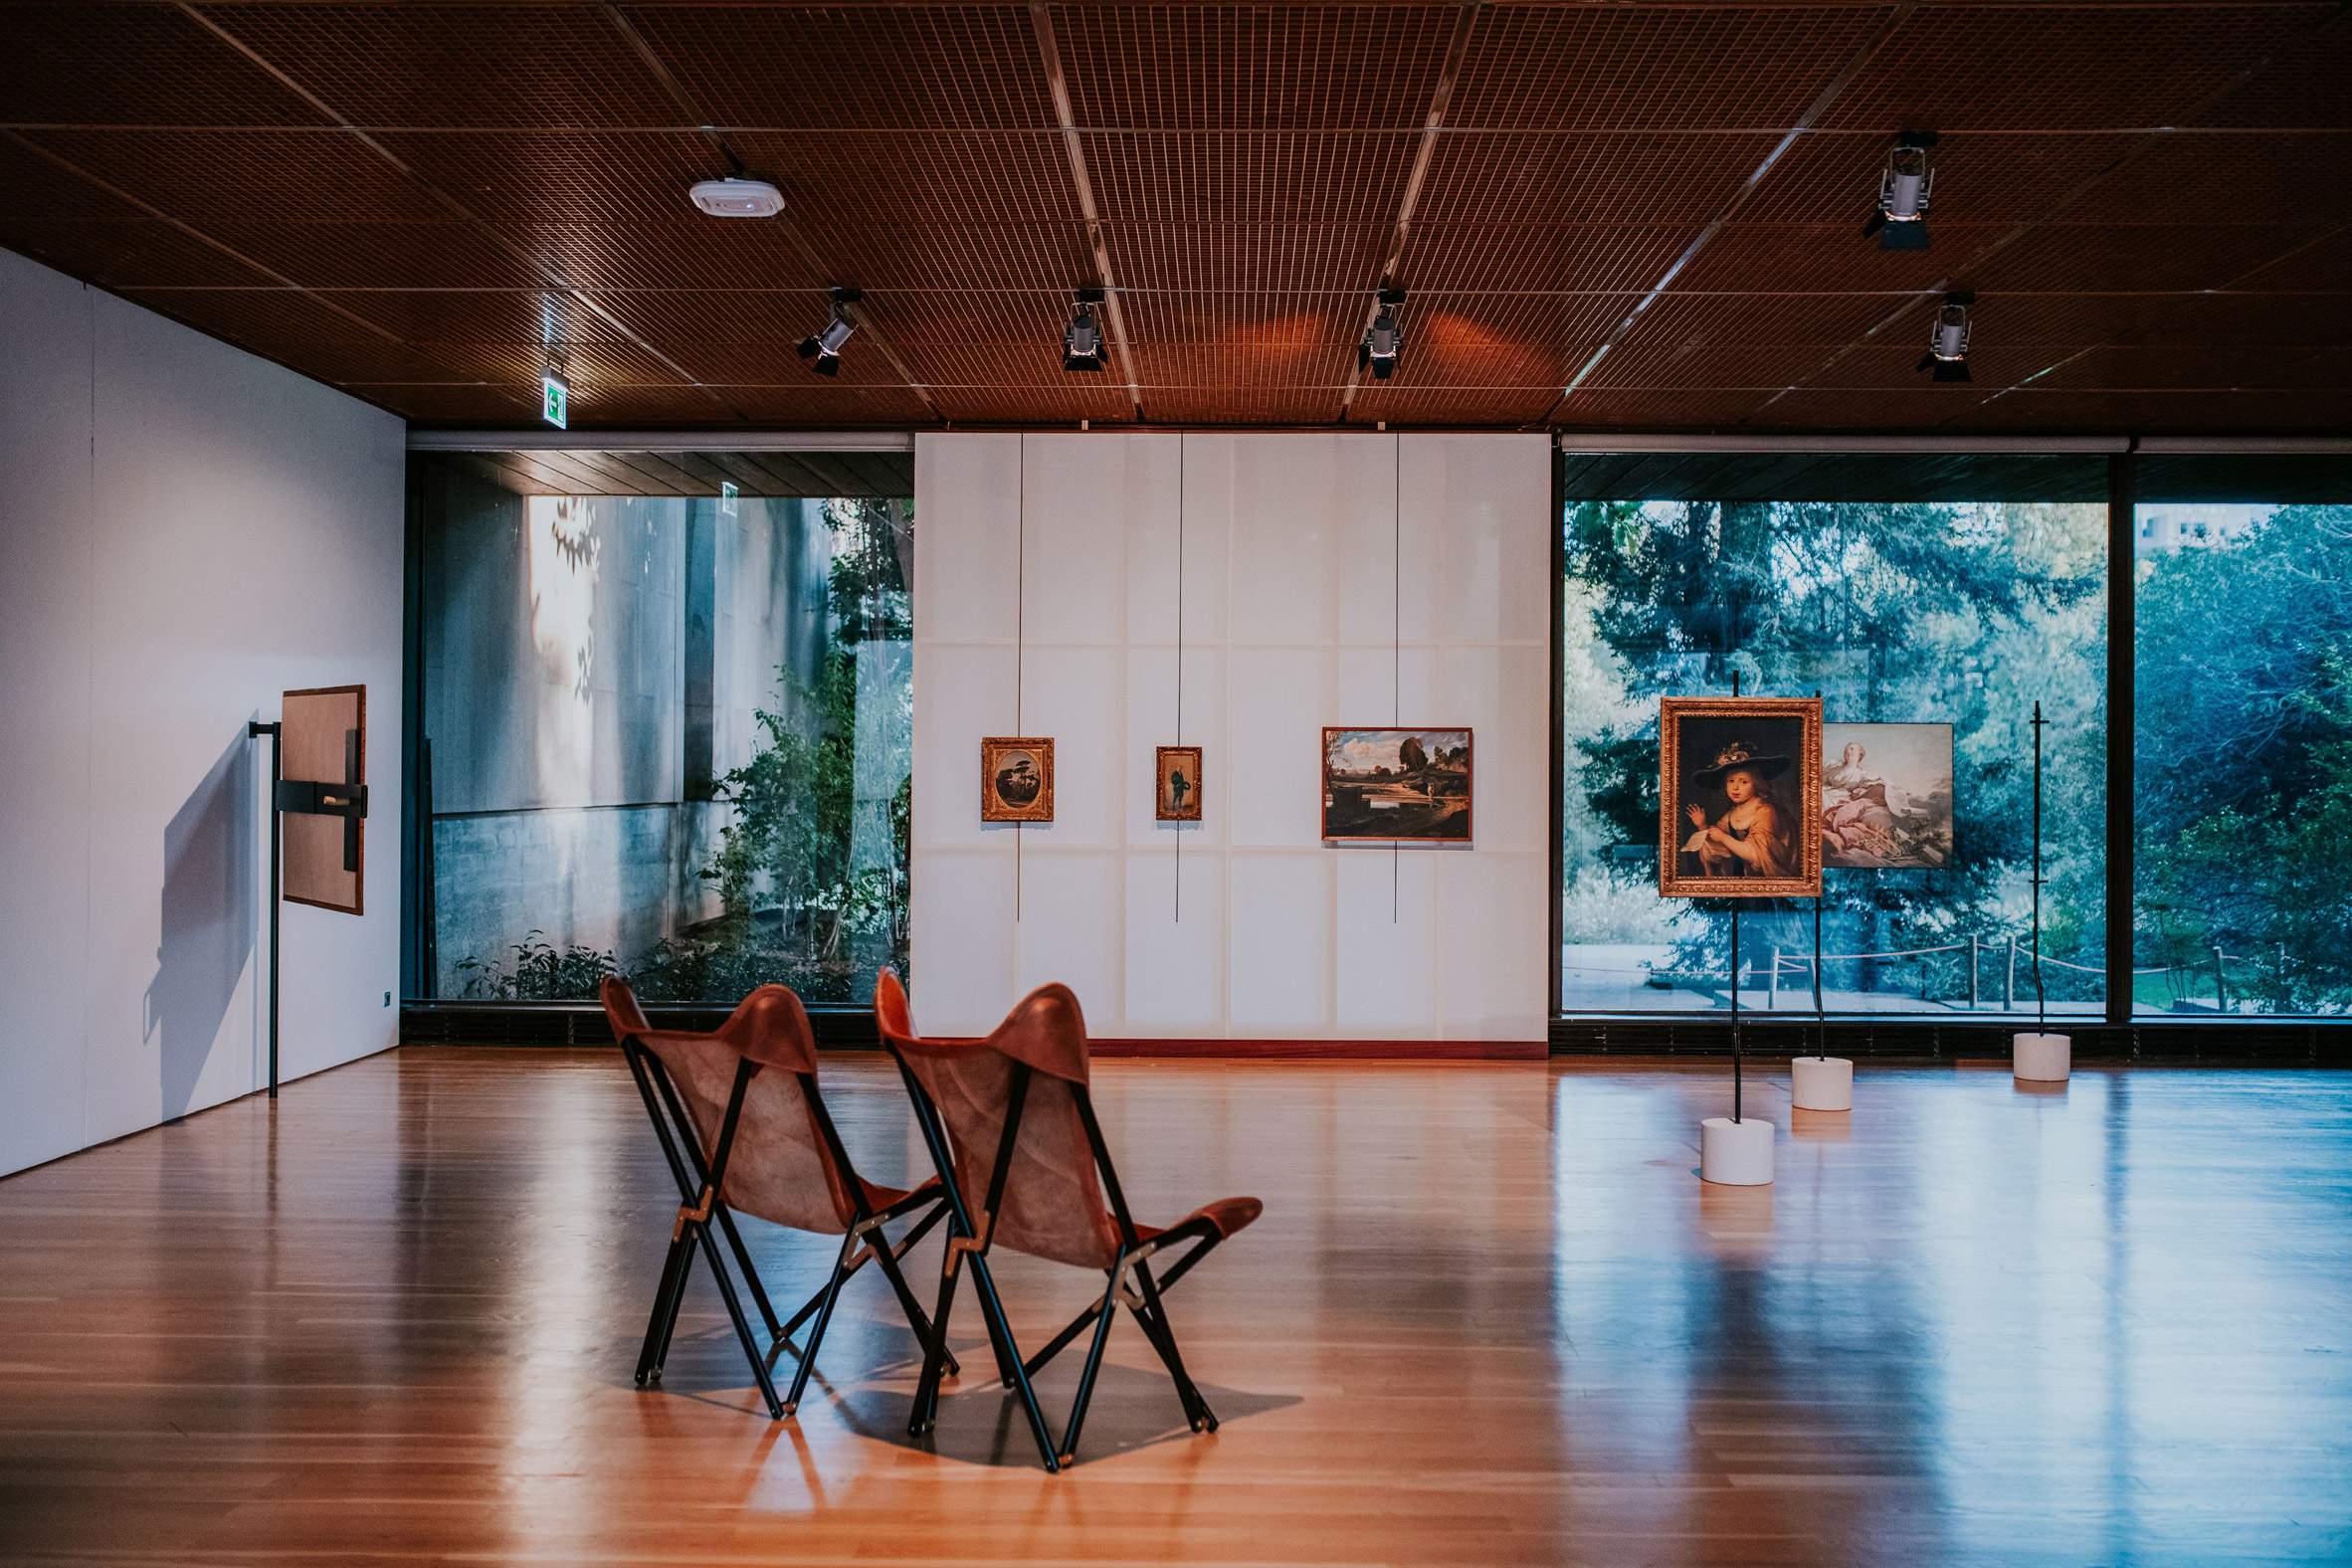 Art on Display at the Gulbenkian Museum showcases radical exhibition design